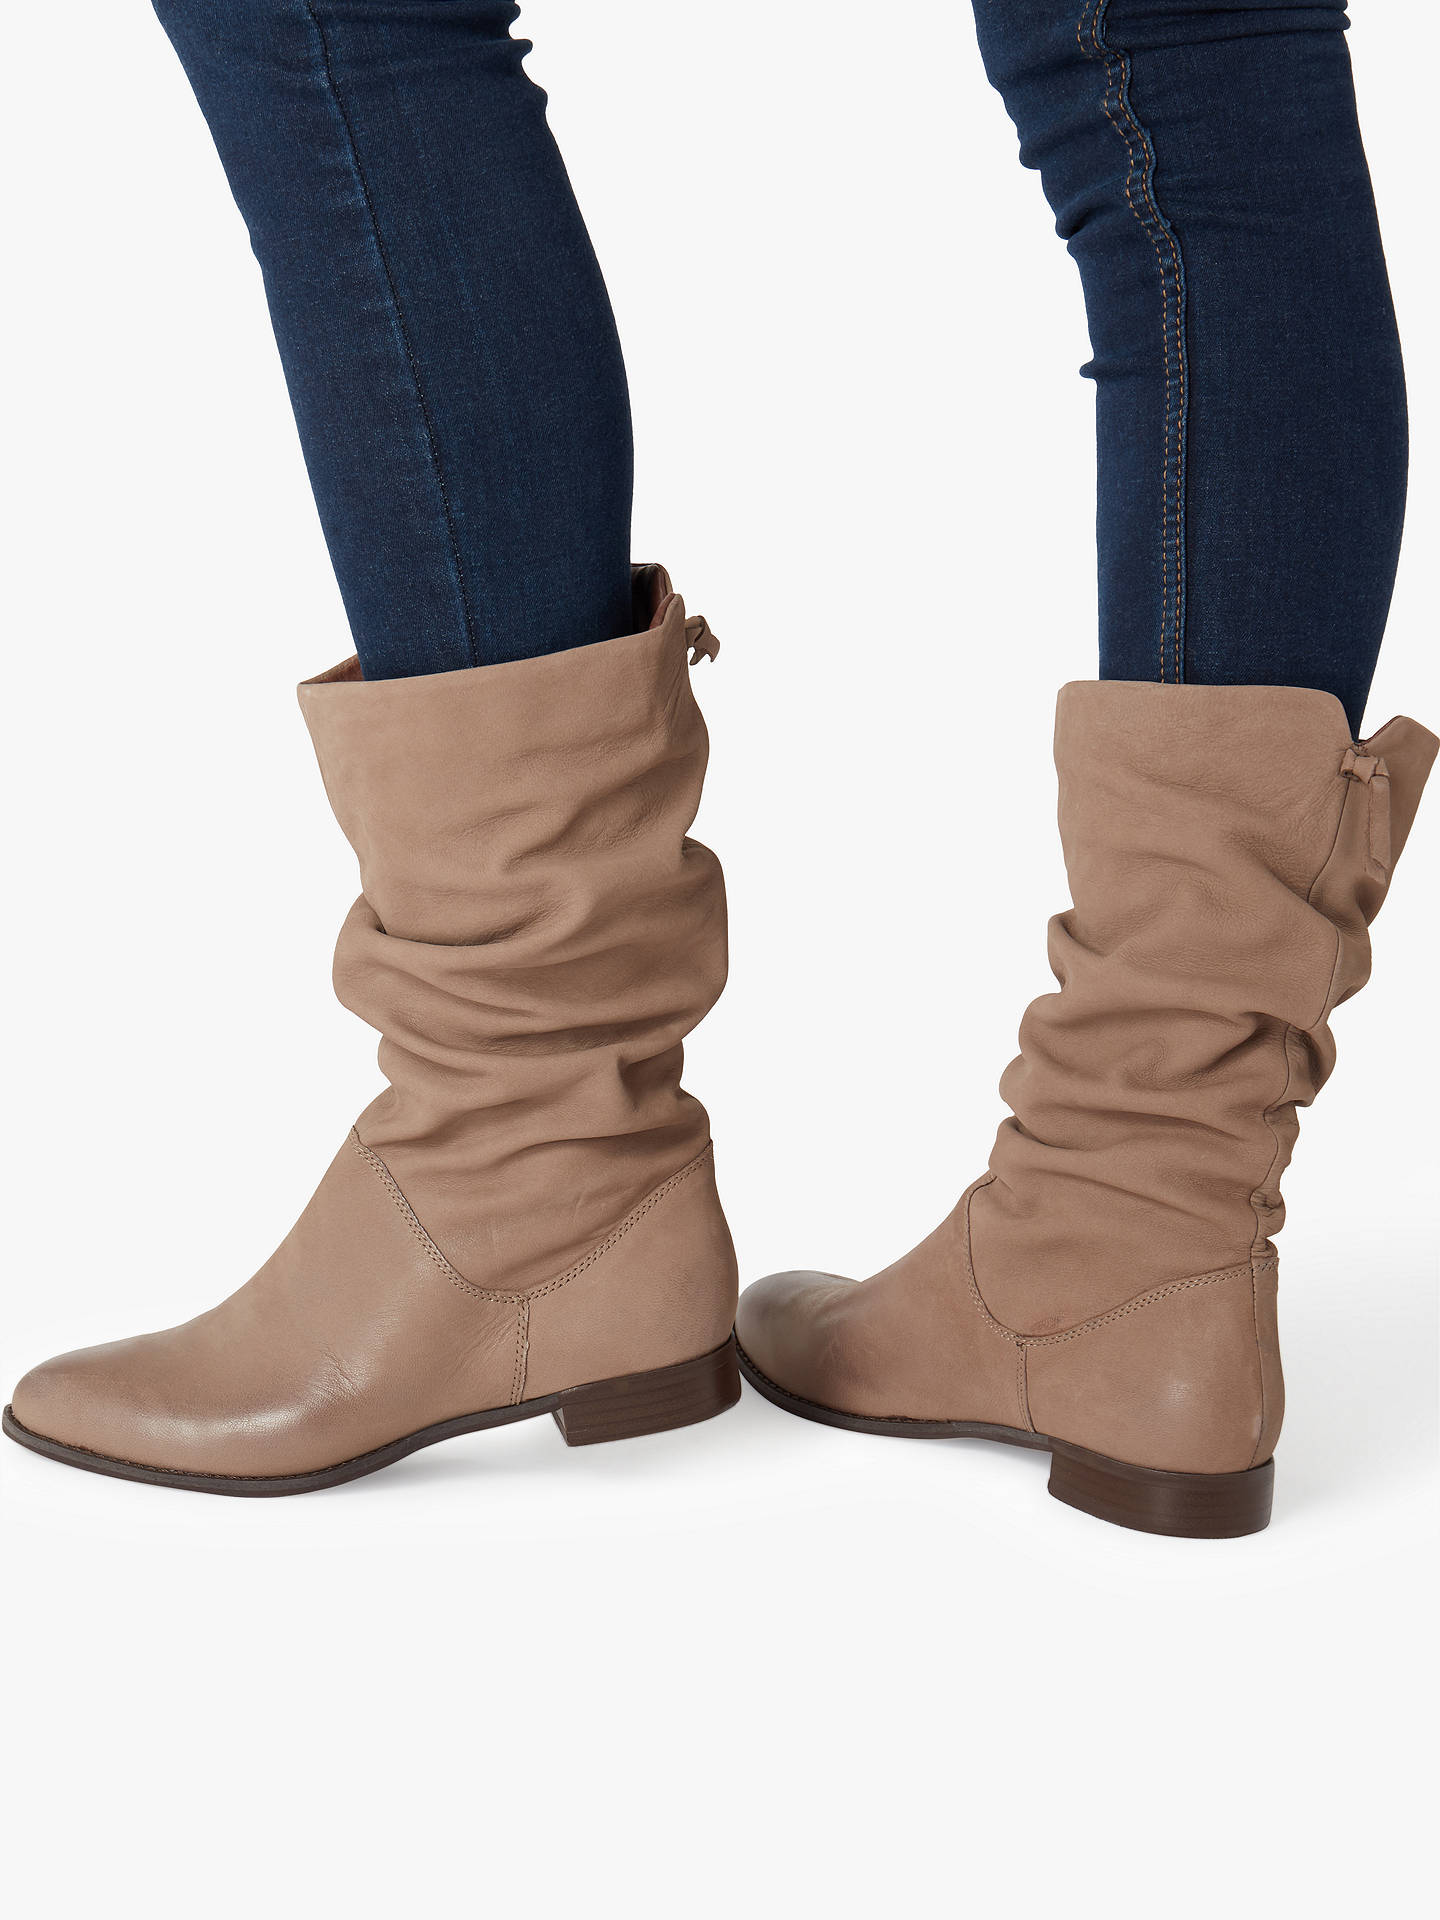 bdded57b76a70 ... Buy Dune Rosalindd Calf Boots, Taupe Leather, 2 Online at johnlewis.com  ...